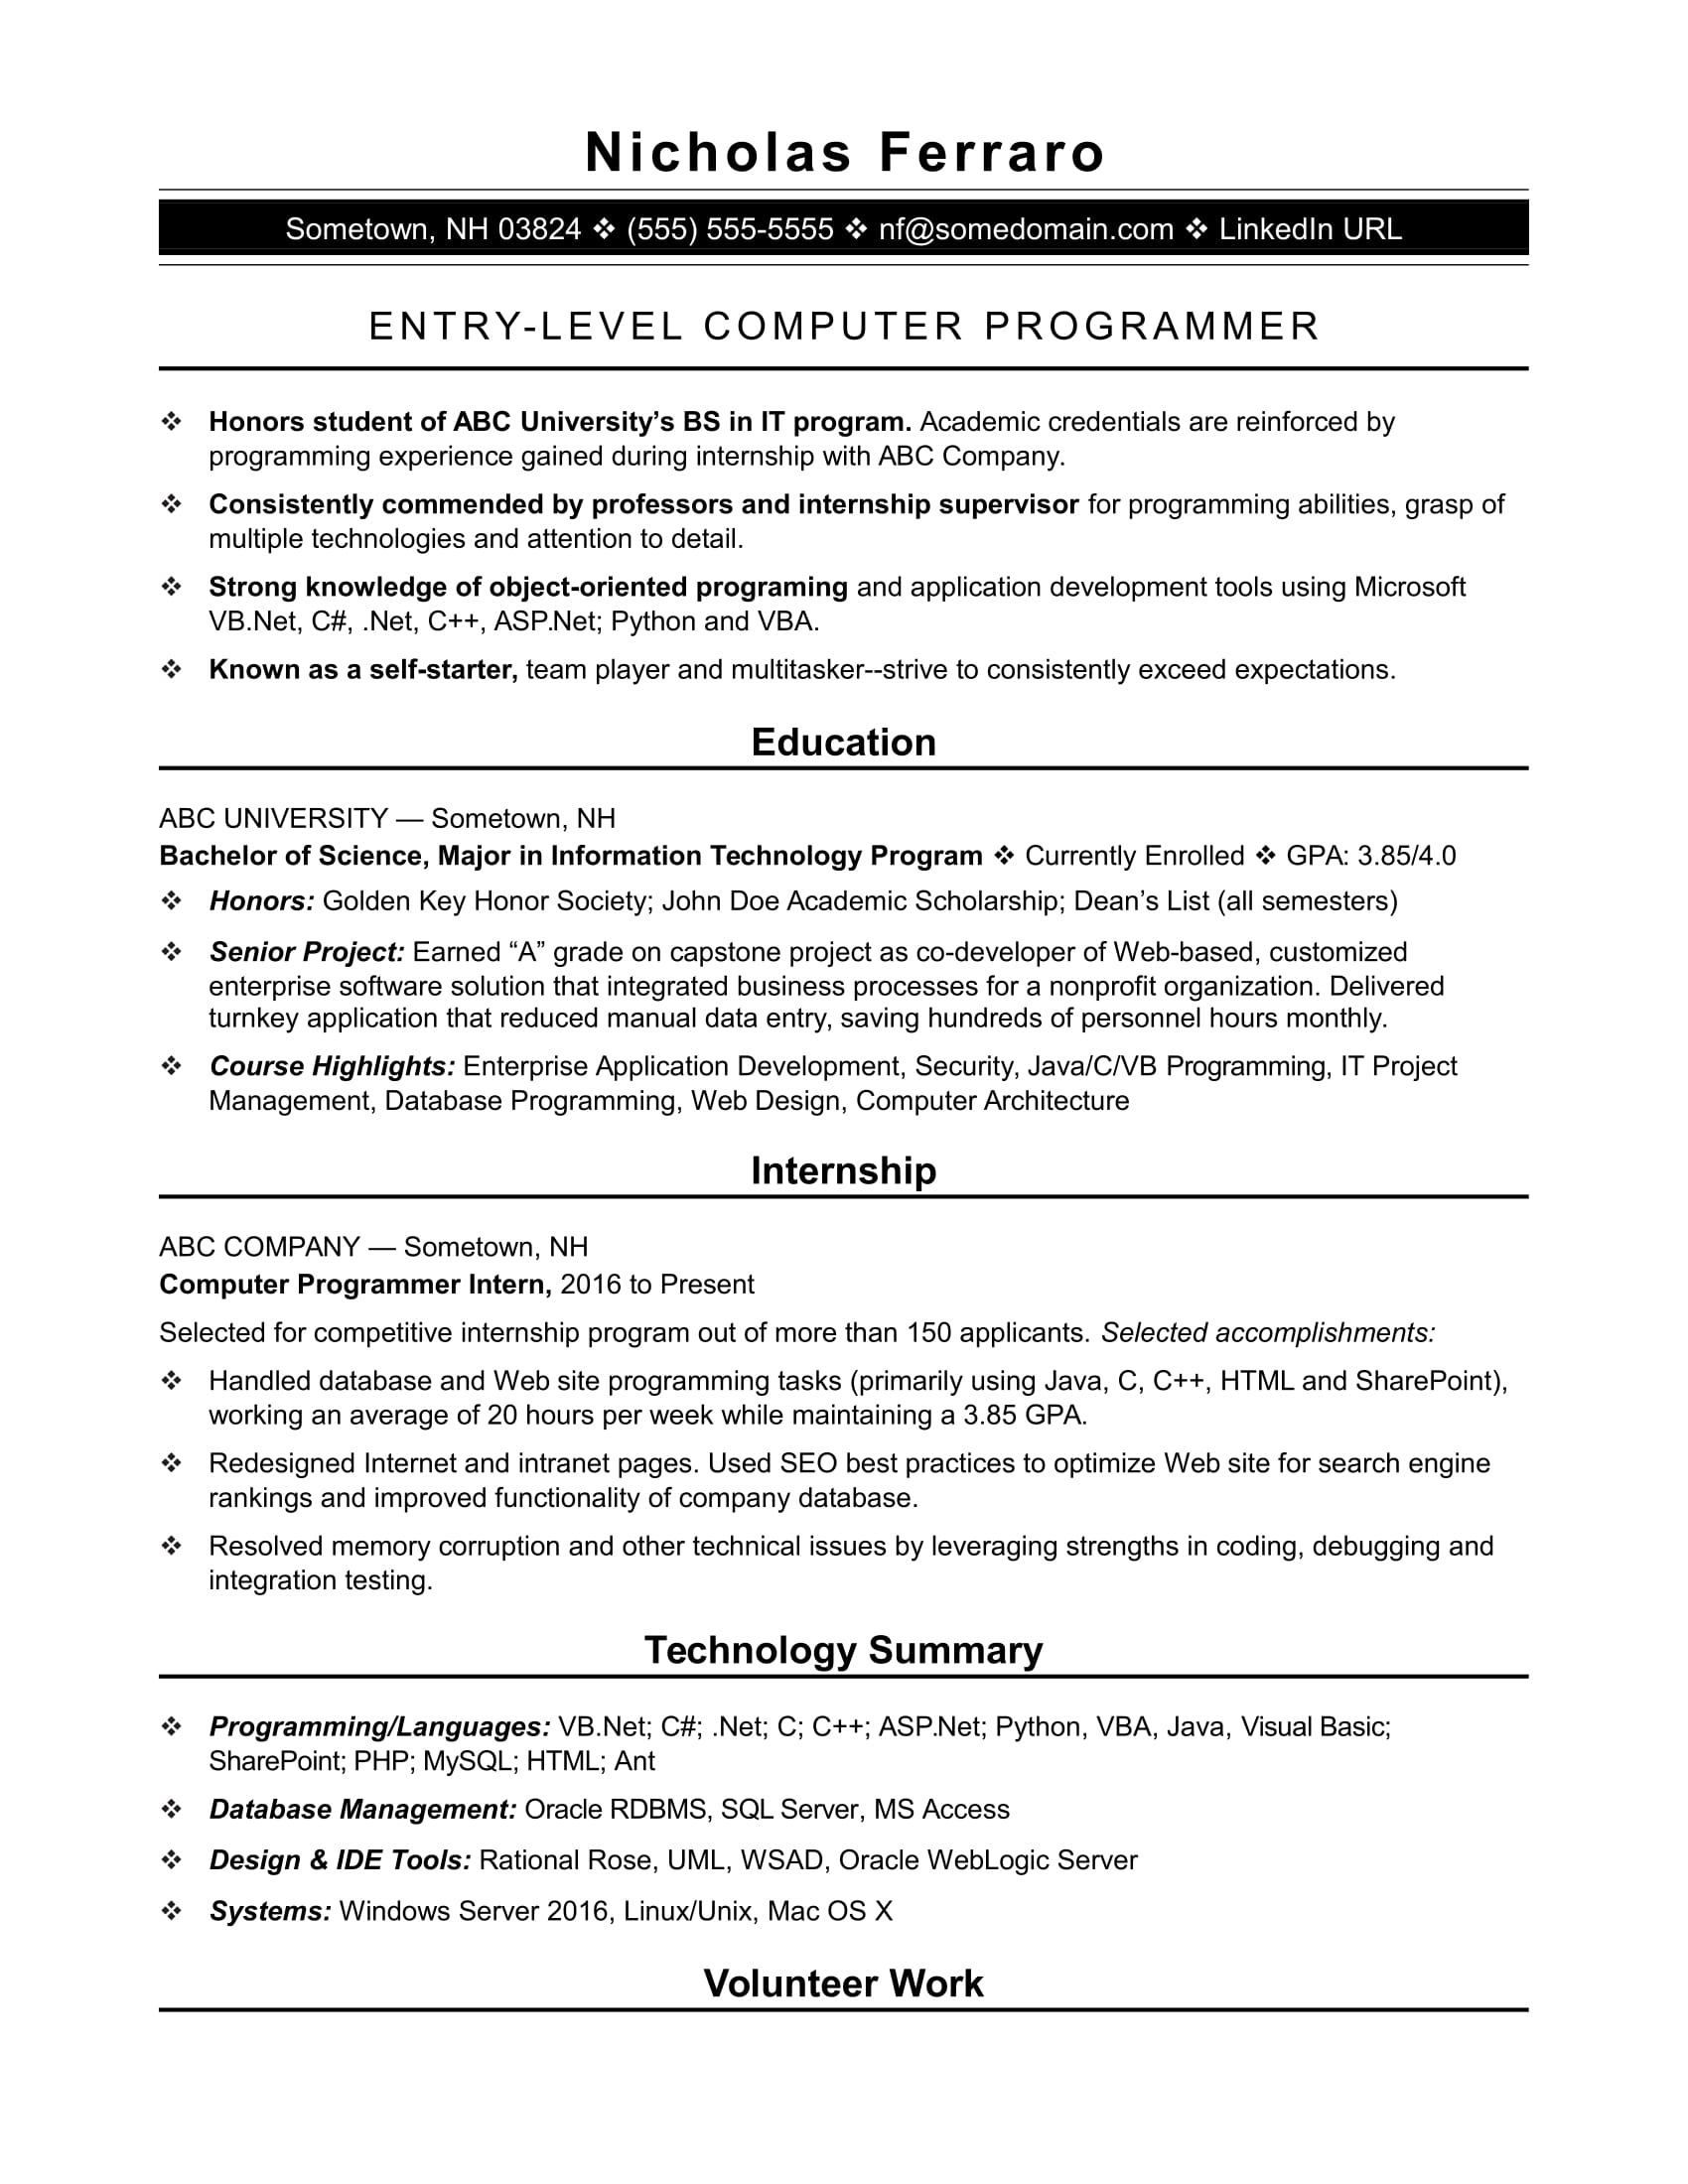 Sample Resume For An Entry Level Computer Programmer